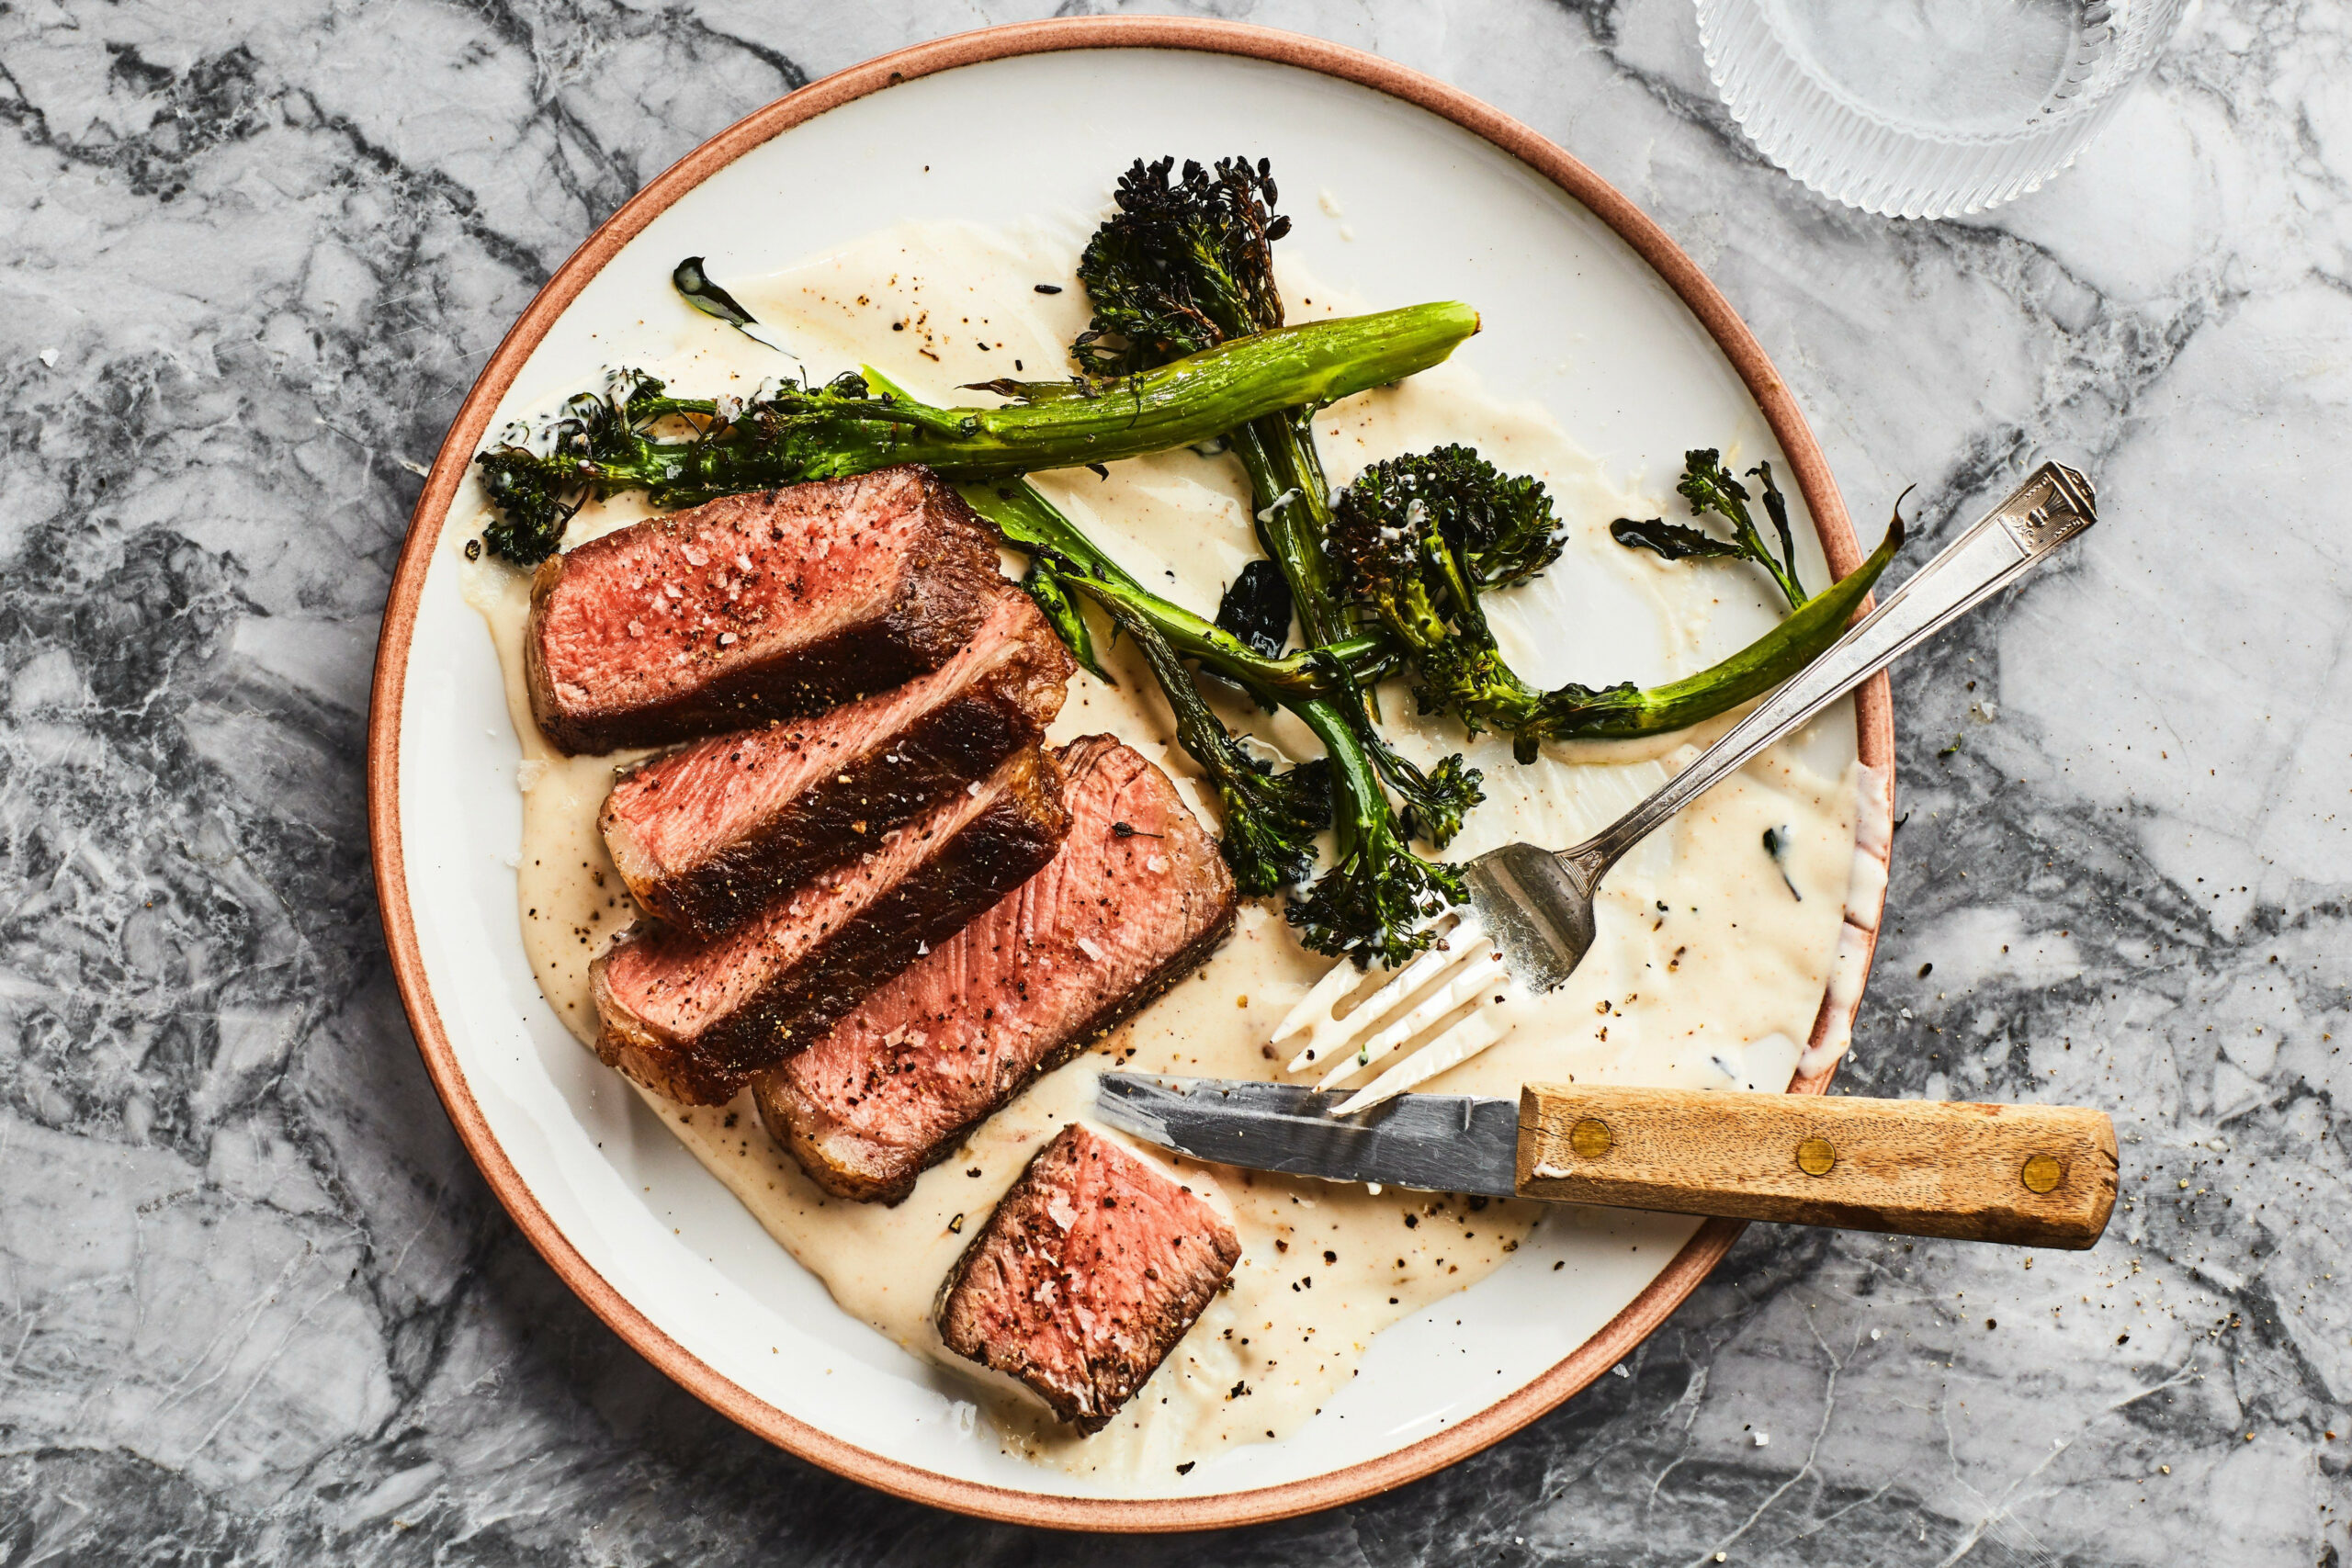 12 Sizzling Steak Dinner Recipes to Make Any Night 12% Beefier - dinner recipes steak